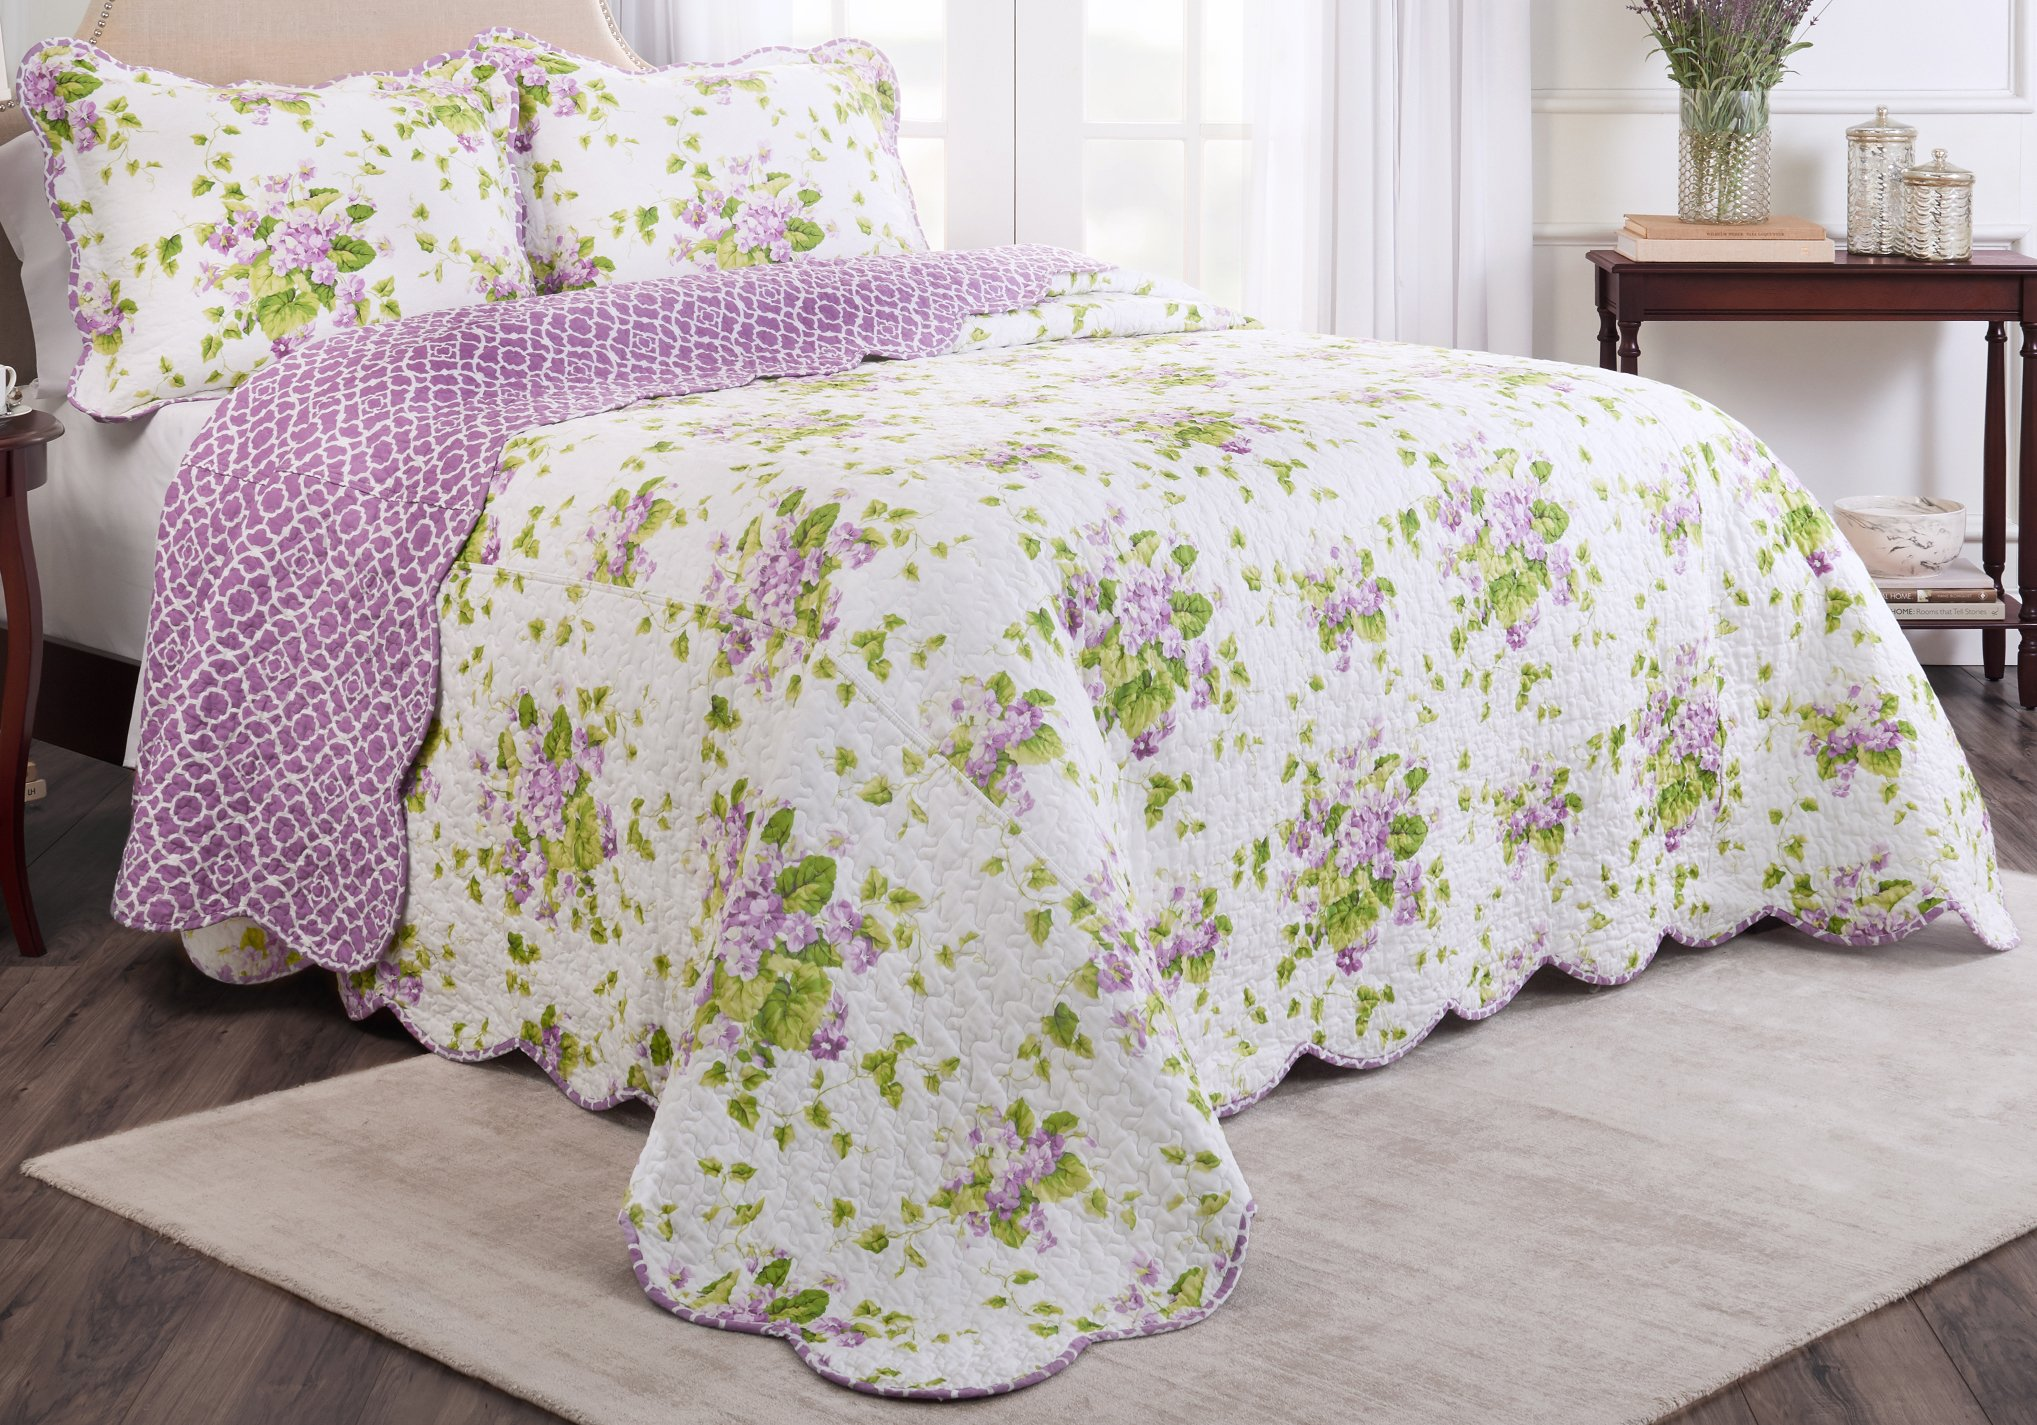 Waverly Sweet 3-Piece Bedspread Collection, King, Violet